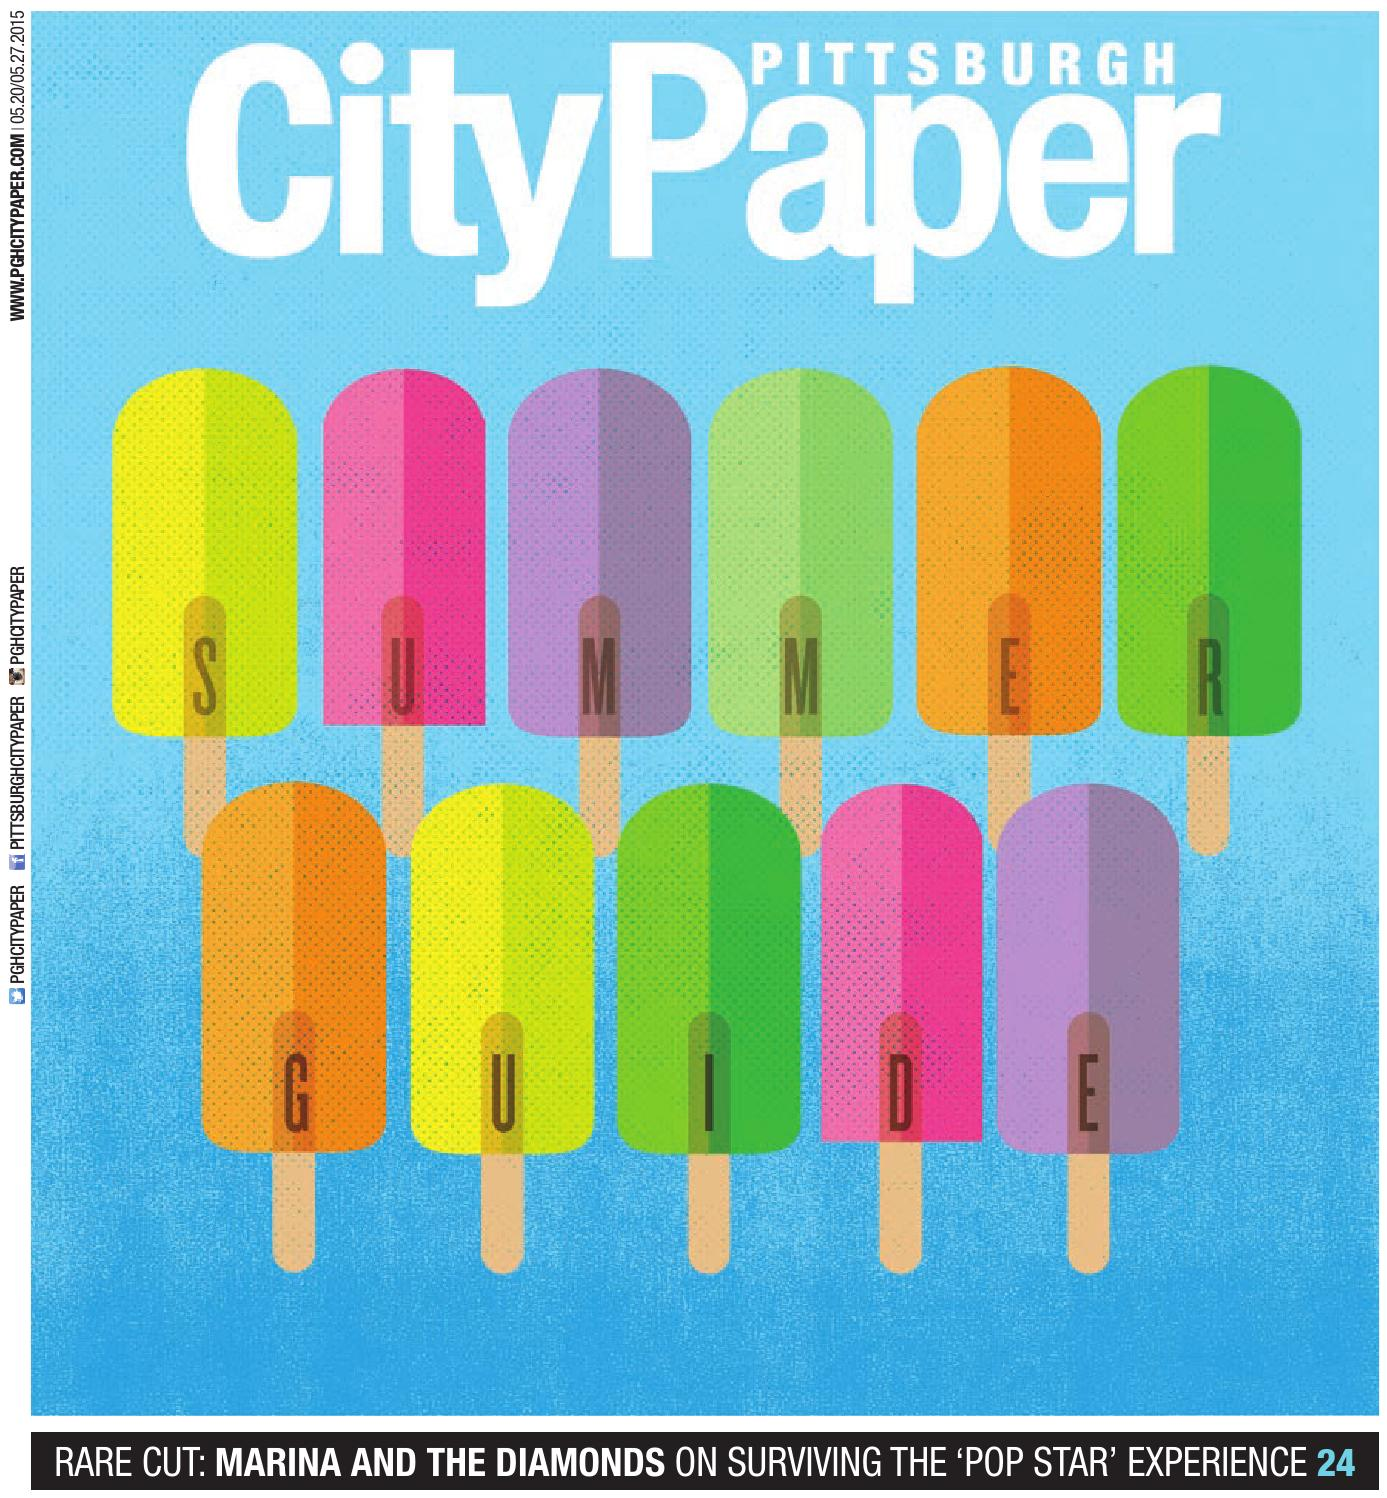 88202b0912 Summer Guide 2015 by Pittsburgh City Paper - issuu